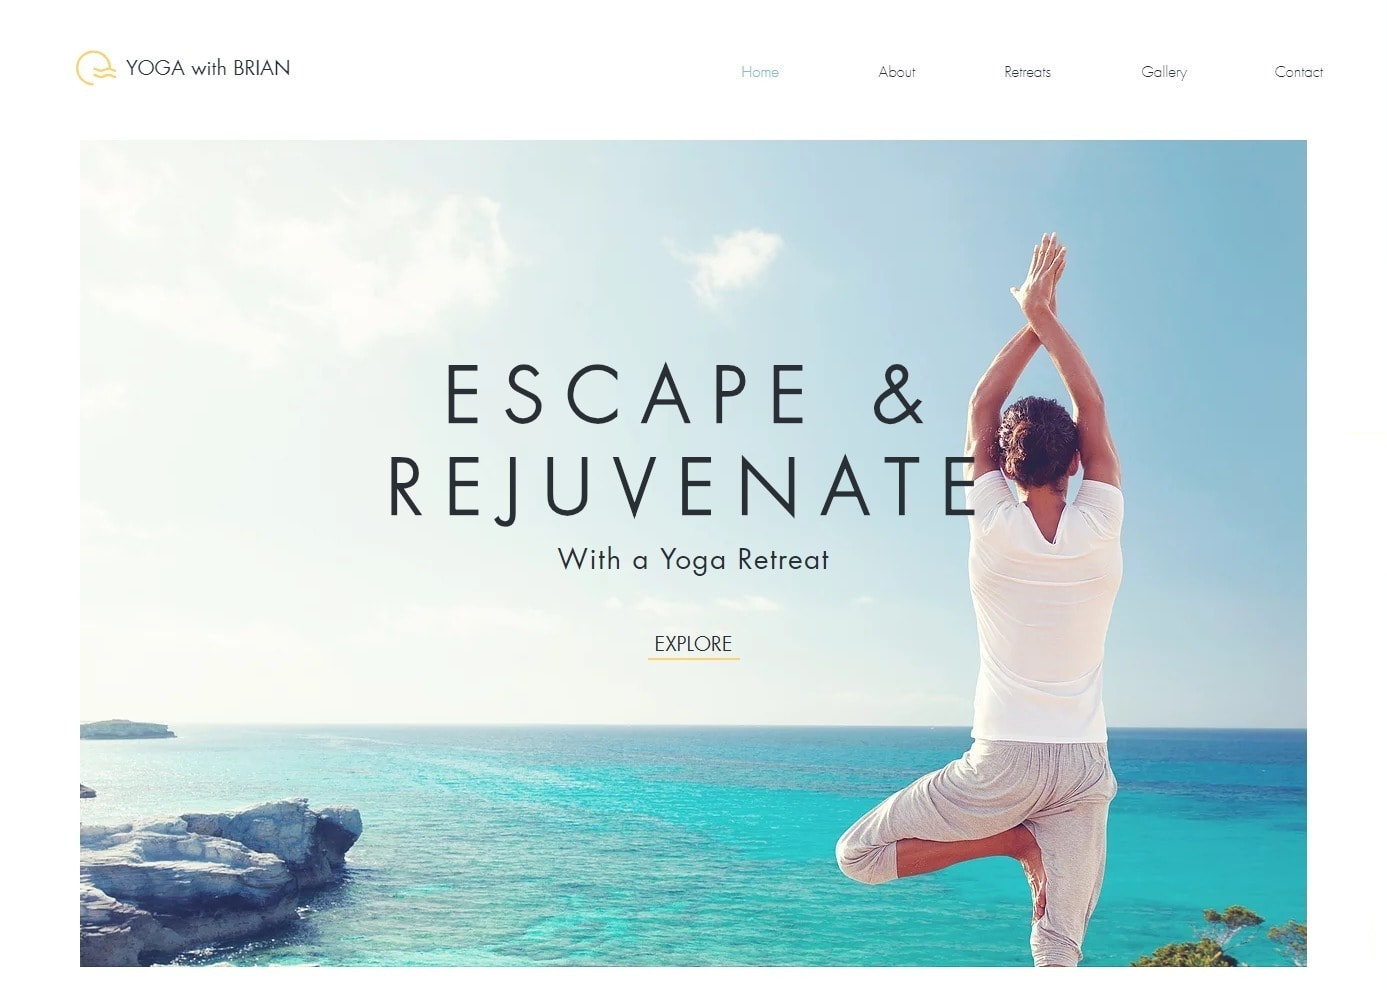 6 Best Wix Templates For Health and Wellness Websites-image1